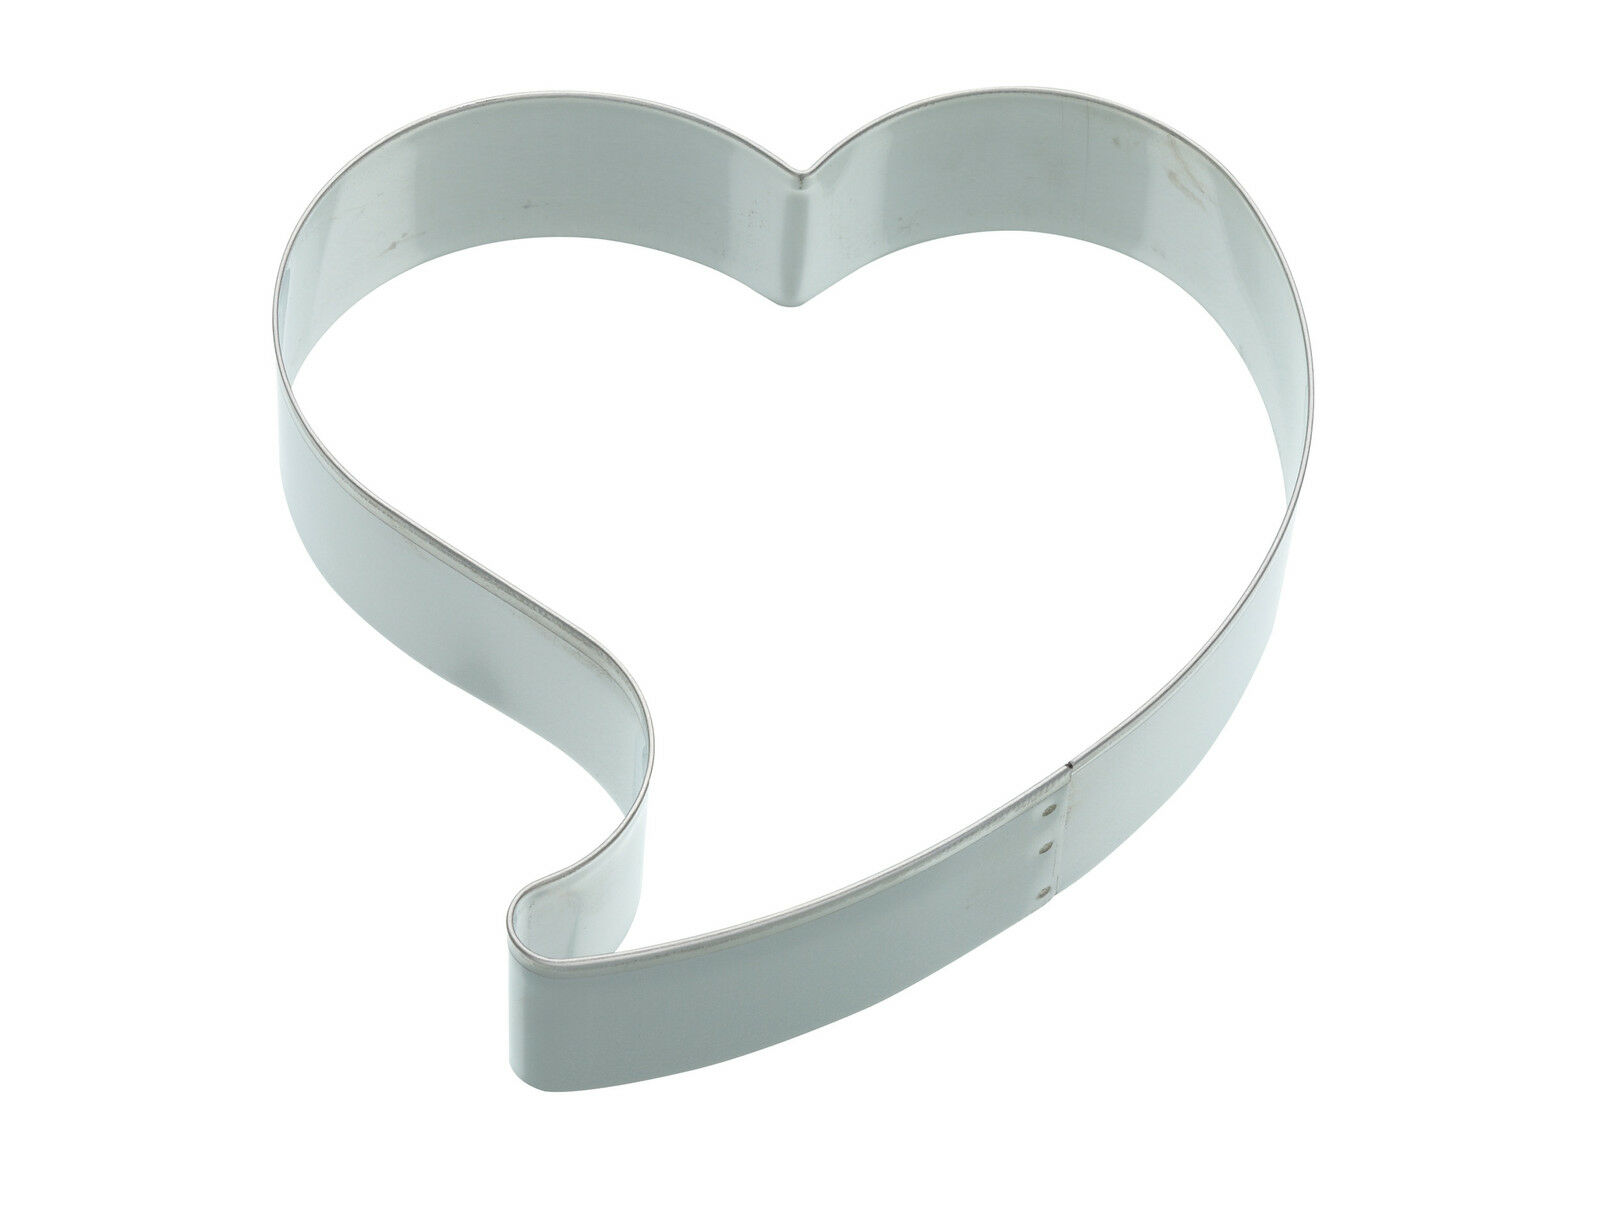 Kitchencraft Large Heart Love Shape Metal Biscuit//Cookie Cutter Home Baking